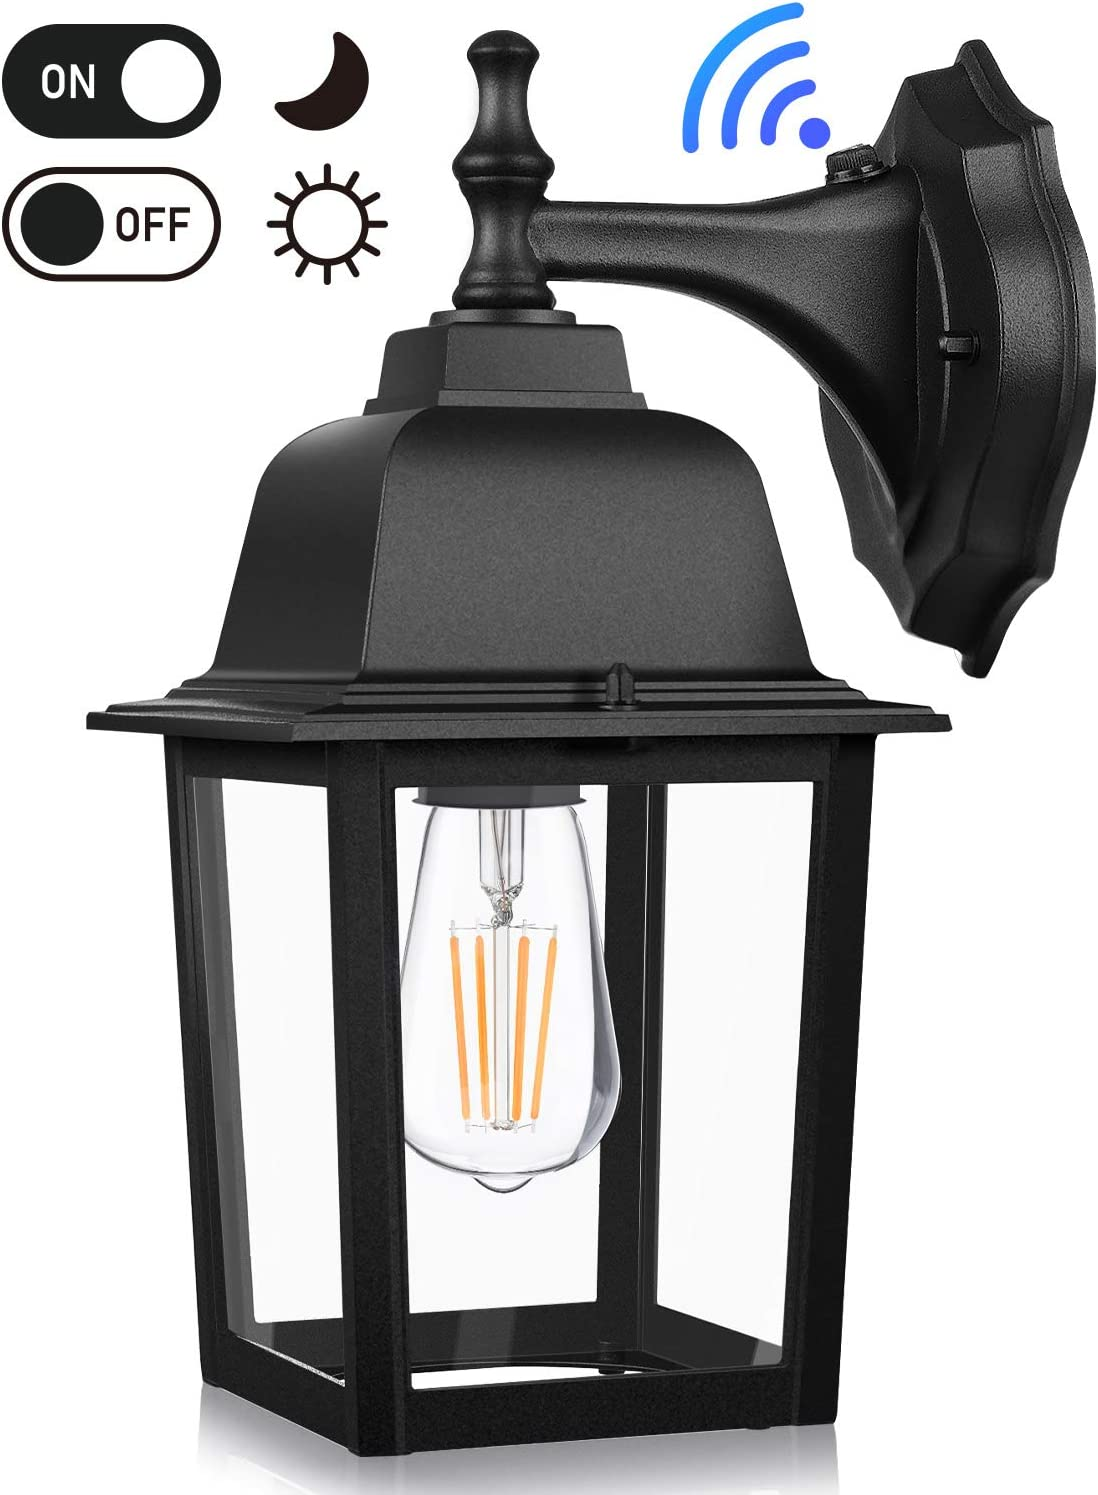 Dusk to Dawn Sensor Outdoor Wall Lanterns, Exterior Wall Sconce Fixture with E26 Base LED Bulb, Wall Mount Lights Anti-Rust Waterproof Matte Black Wall Lamp with Clear Glass Shade for Garage Doorway